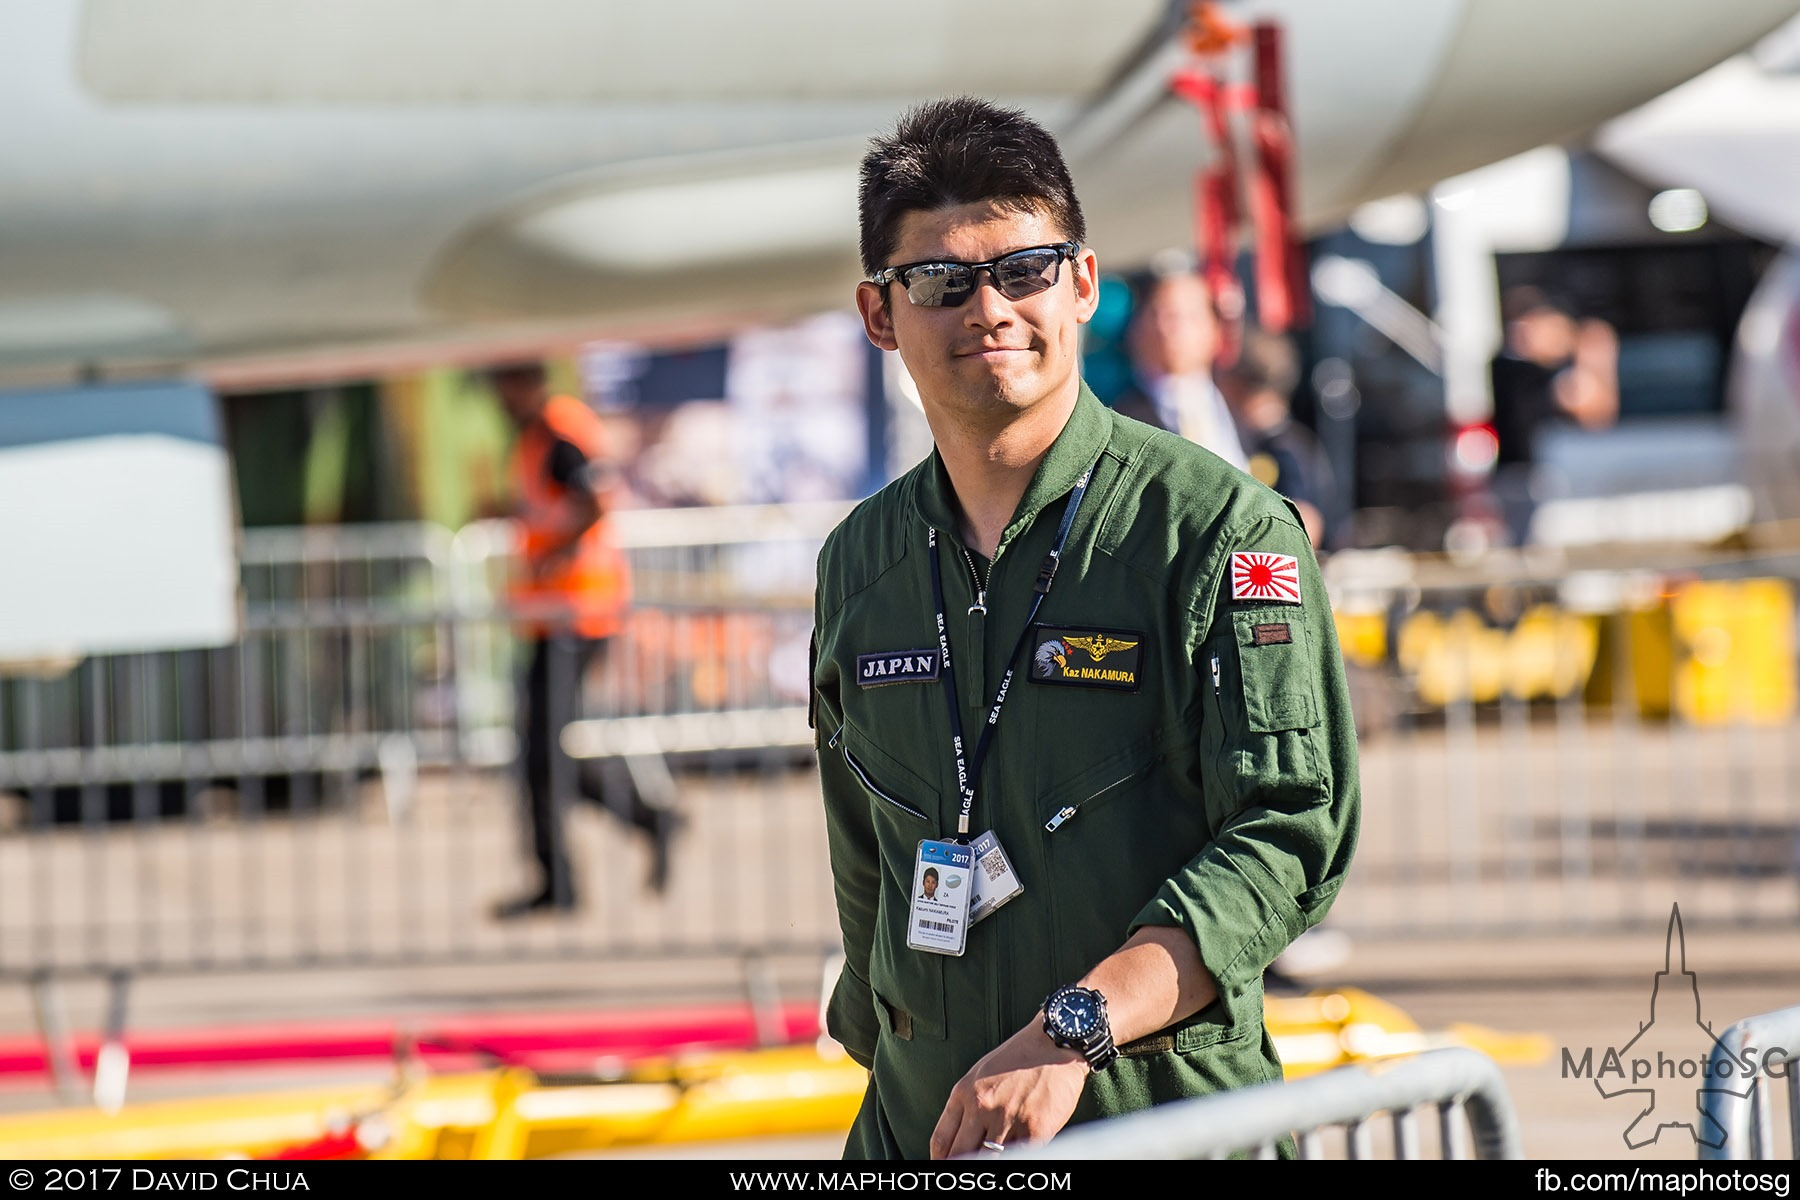 8. A crew member of the Japan Maritime Self-Defence Force Kawasaki P-1 Maritime Patrol Aircraft.